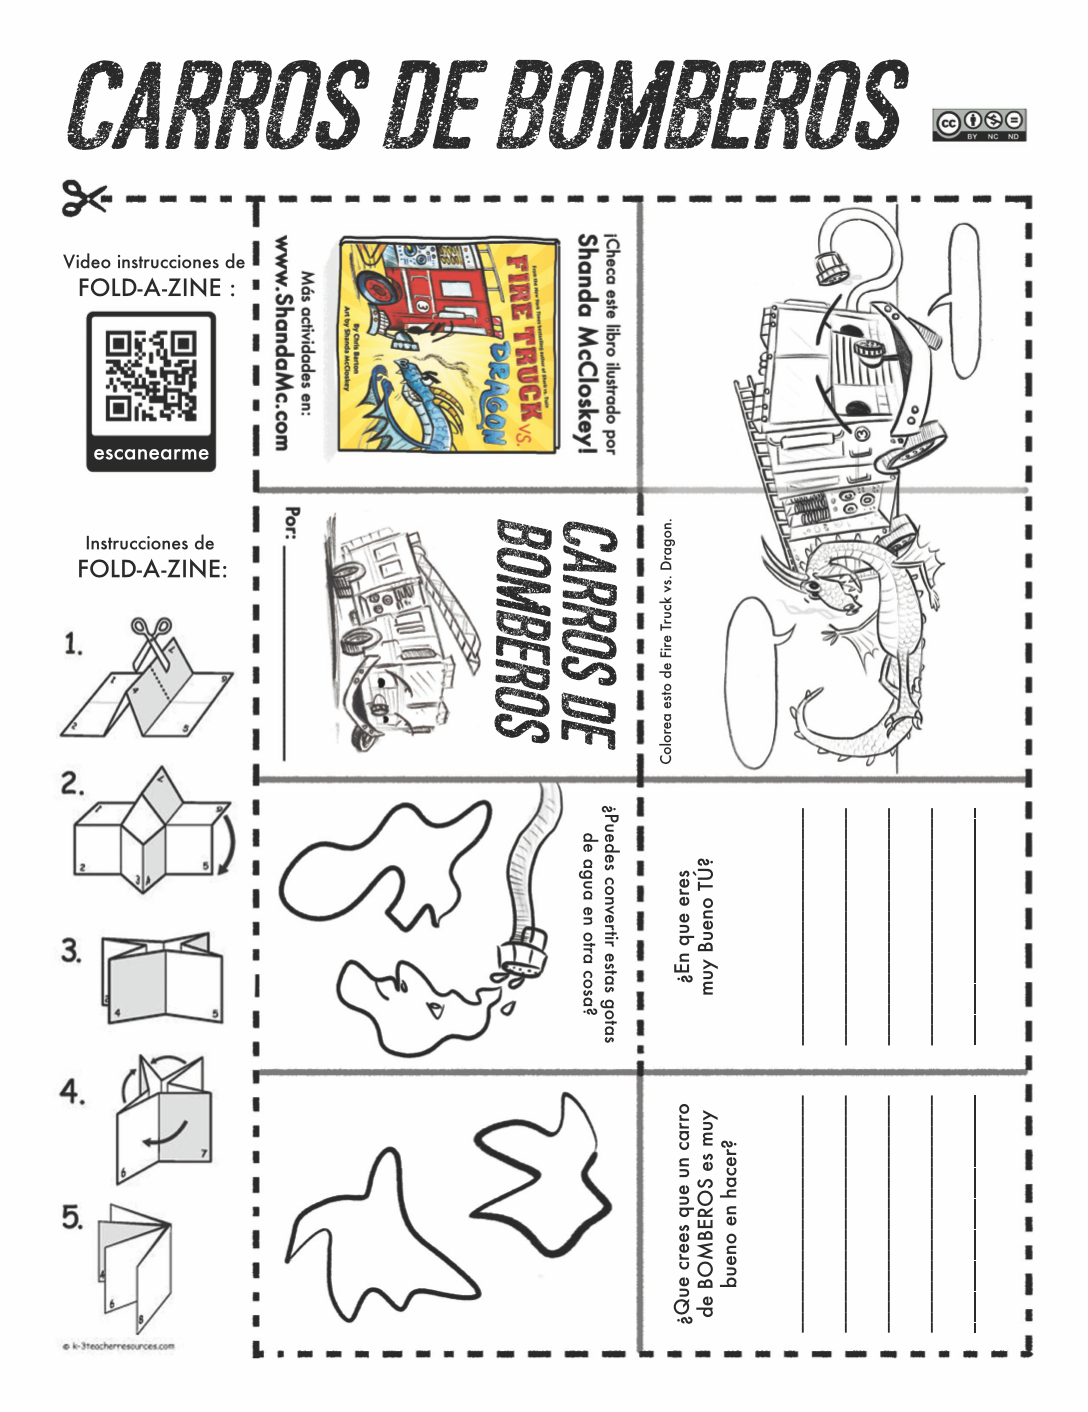 Amazing fire trucks (carros de bomberos) zine activity (en español) inspired by the book, Fire Truck vs. Dragon, by Chris Barton and Shanda McCloskey